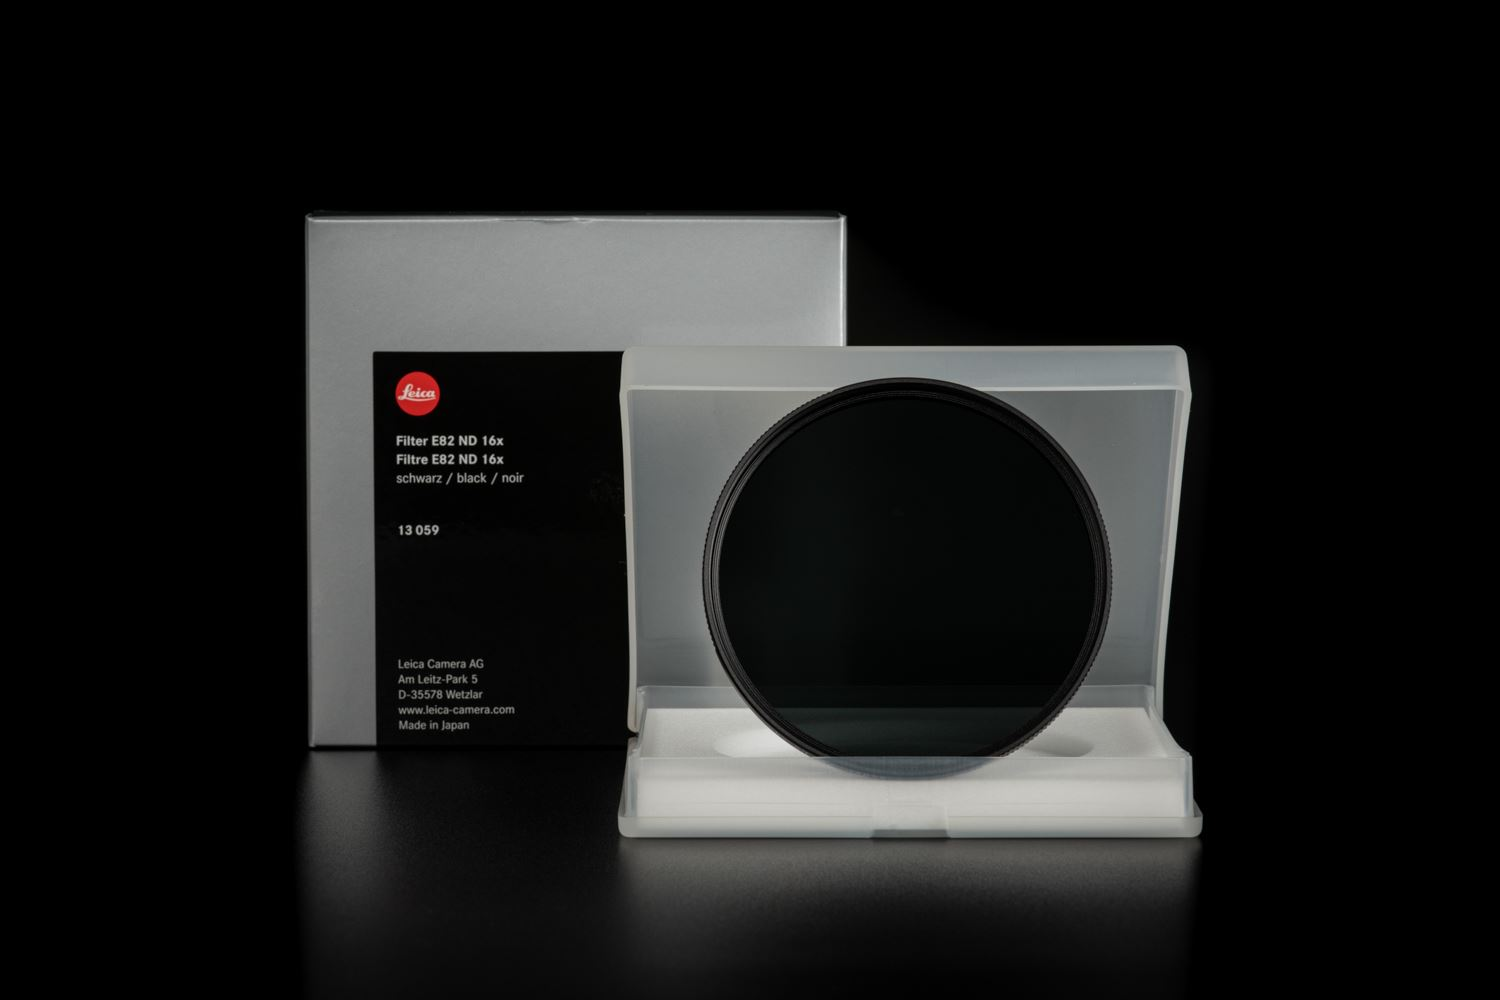 Picture of Leica Filter ND 16x E82, black